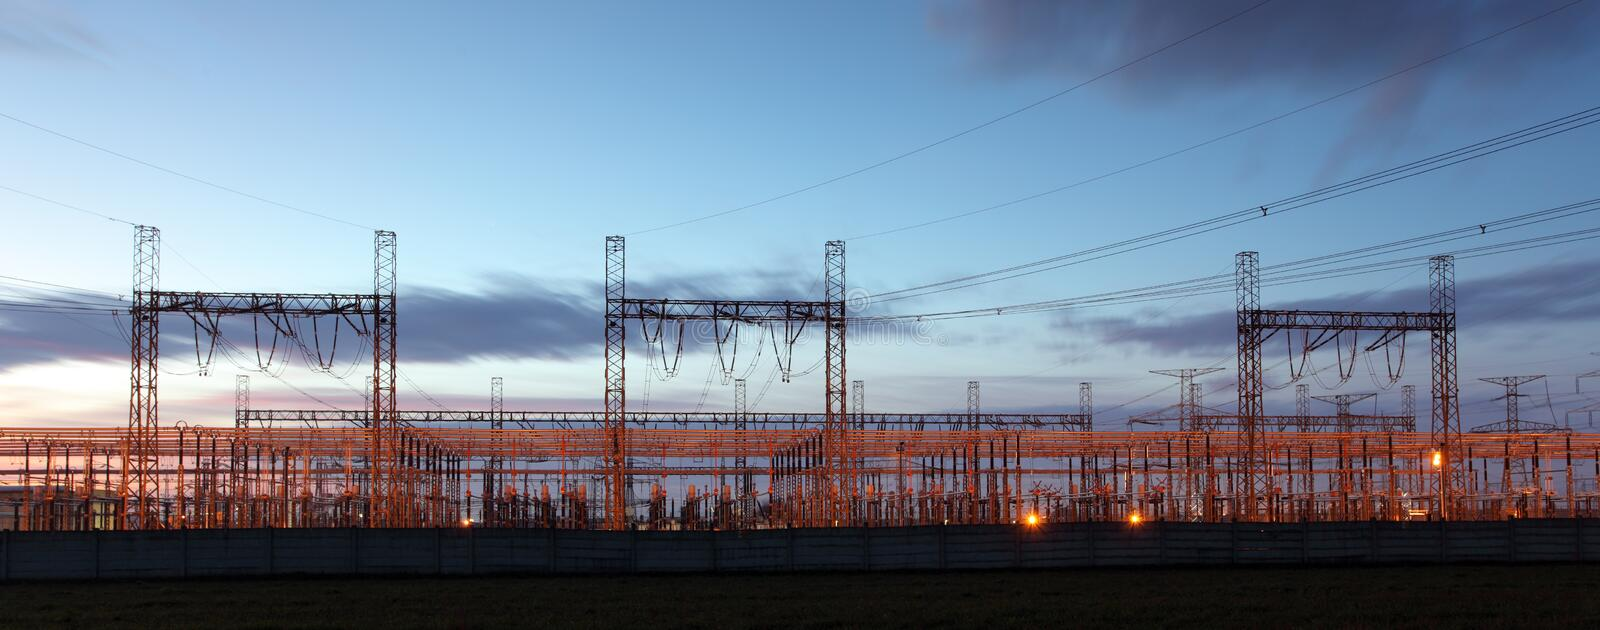 distribution substation silhouetted against dusk sky ,electricity background stock photography